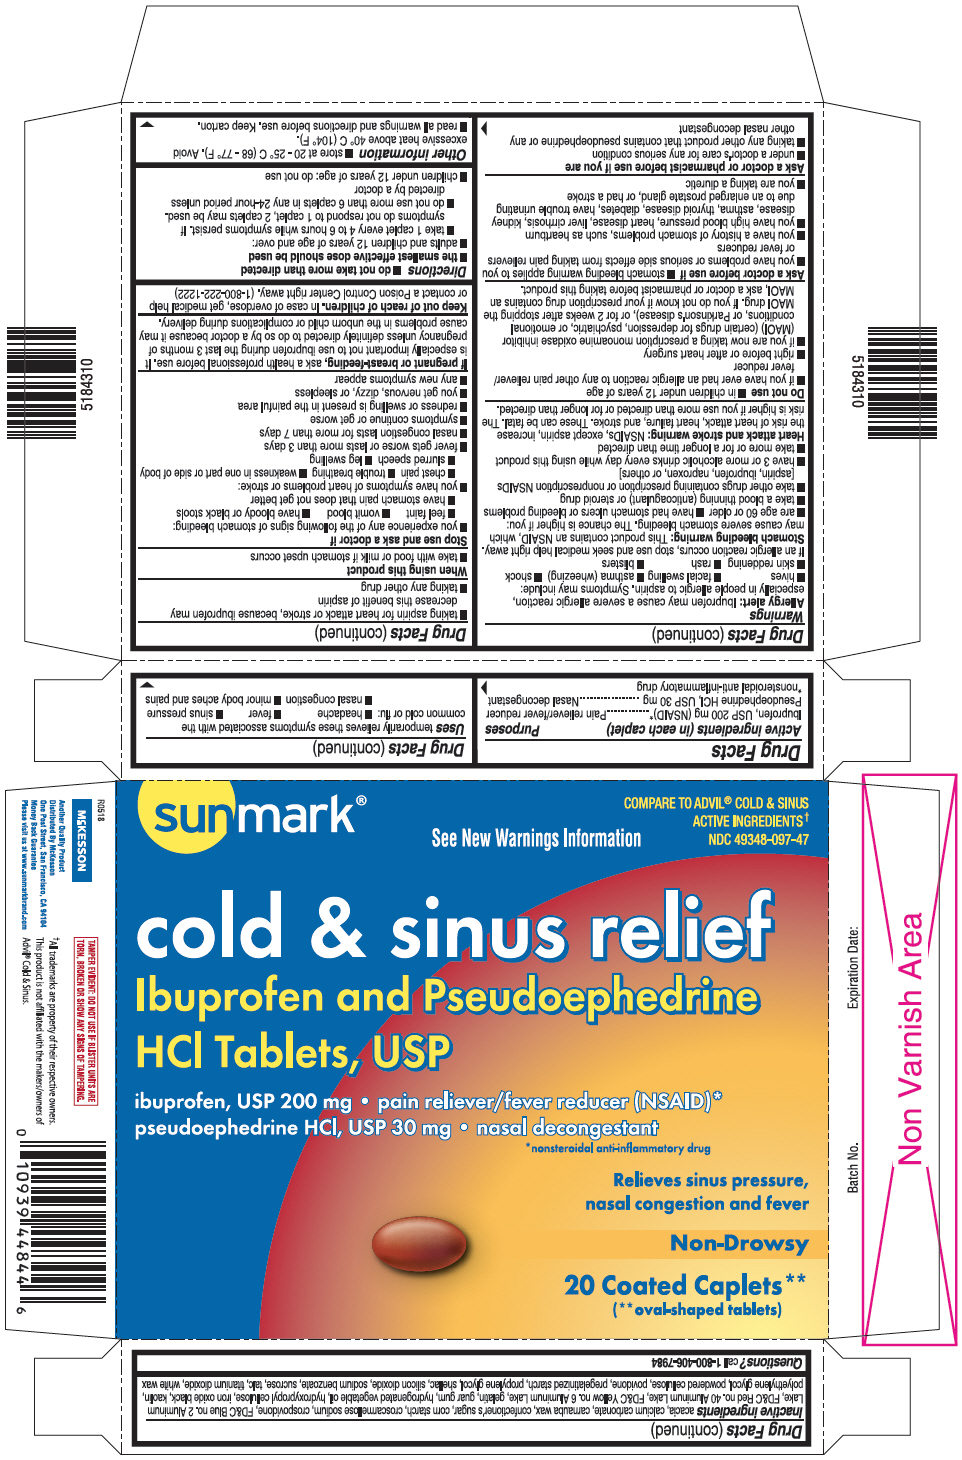 PRINCIPAL DISPLAY PANEL - 200 mg/30 mg Caplet Blister Pack Carton